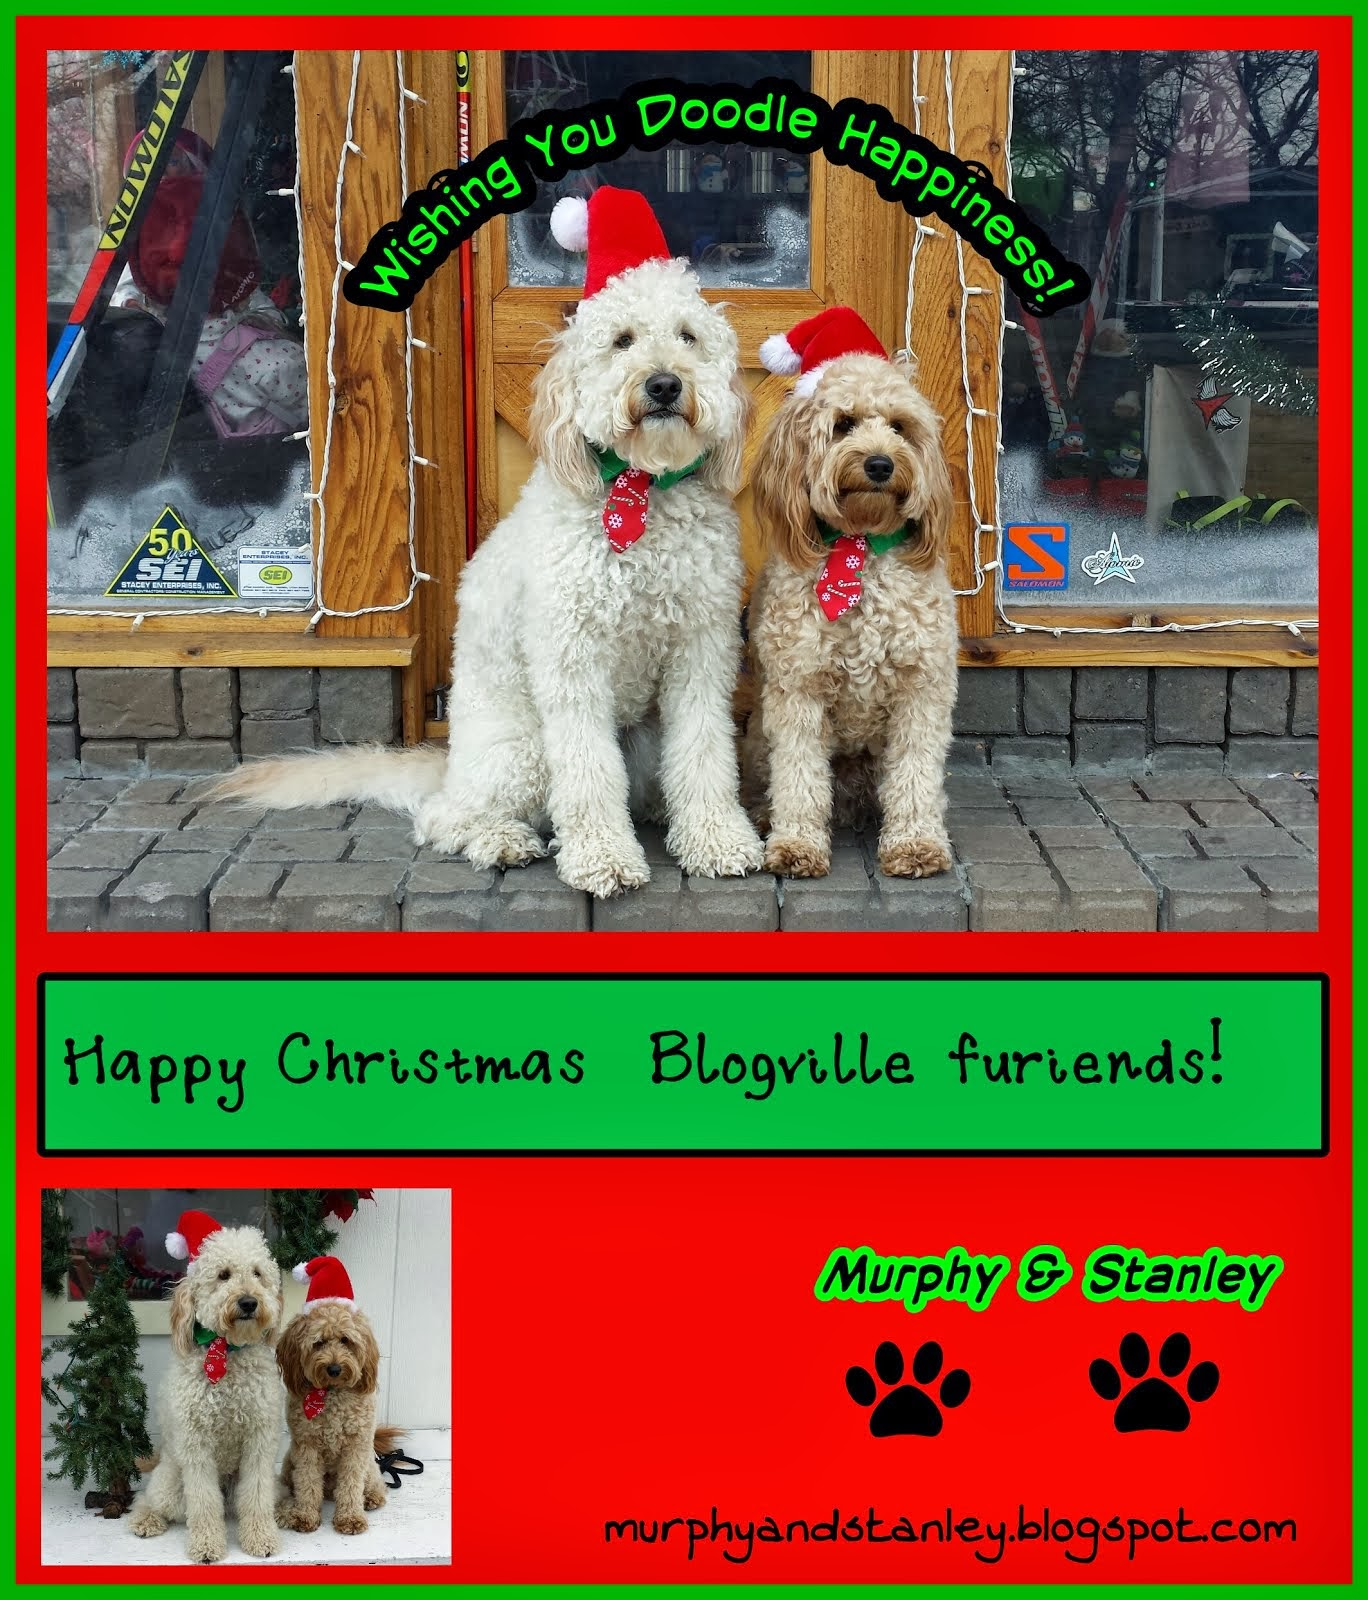 xmas card from Murphy&Stanley